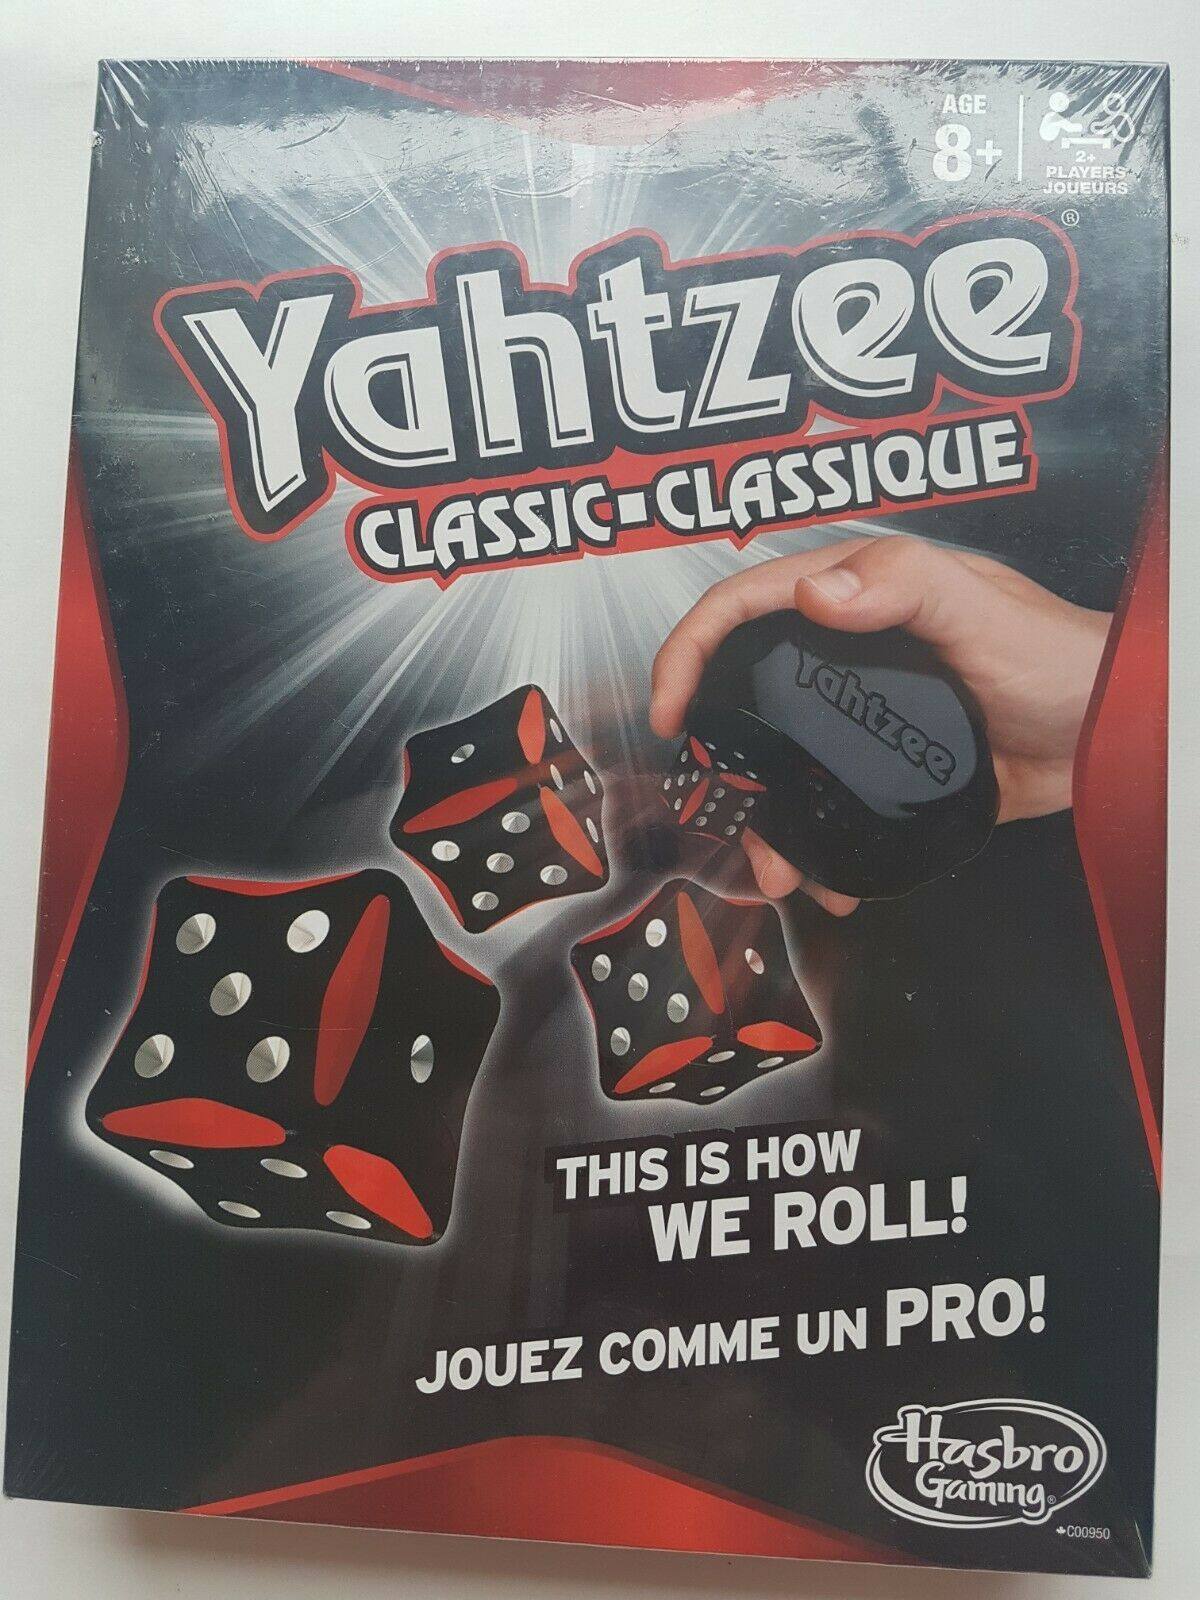 Details about yahtzee classic dice game New! hasbro ages 8